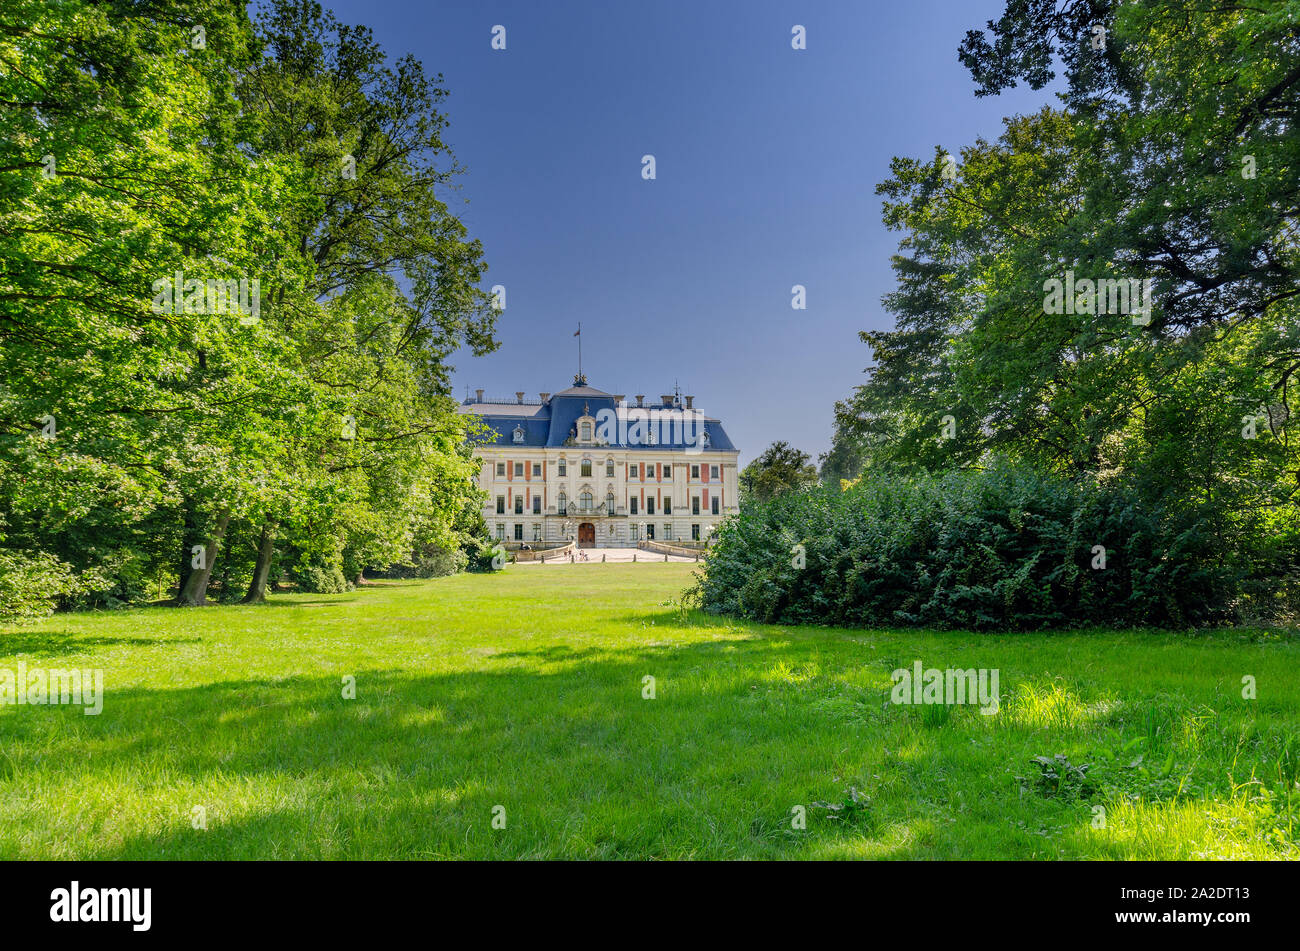 Pszczyna (ger.: Pless), Silesian province, Poland. Neo-baroque castle of the Hochberg family, museum at present. Stock Photo